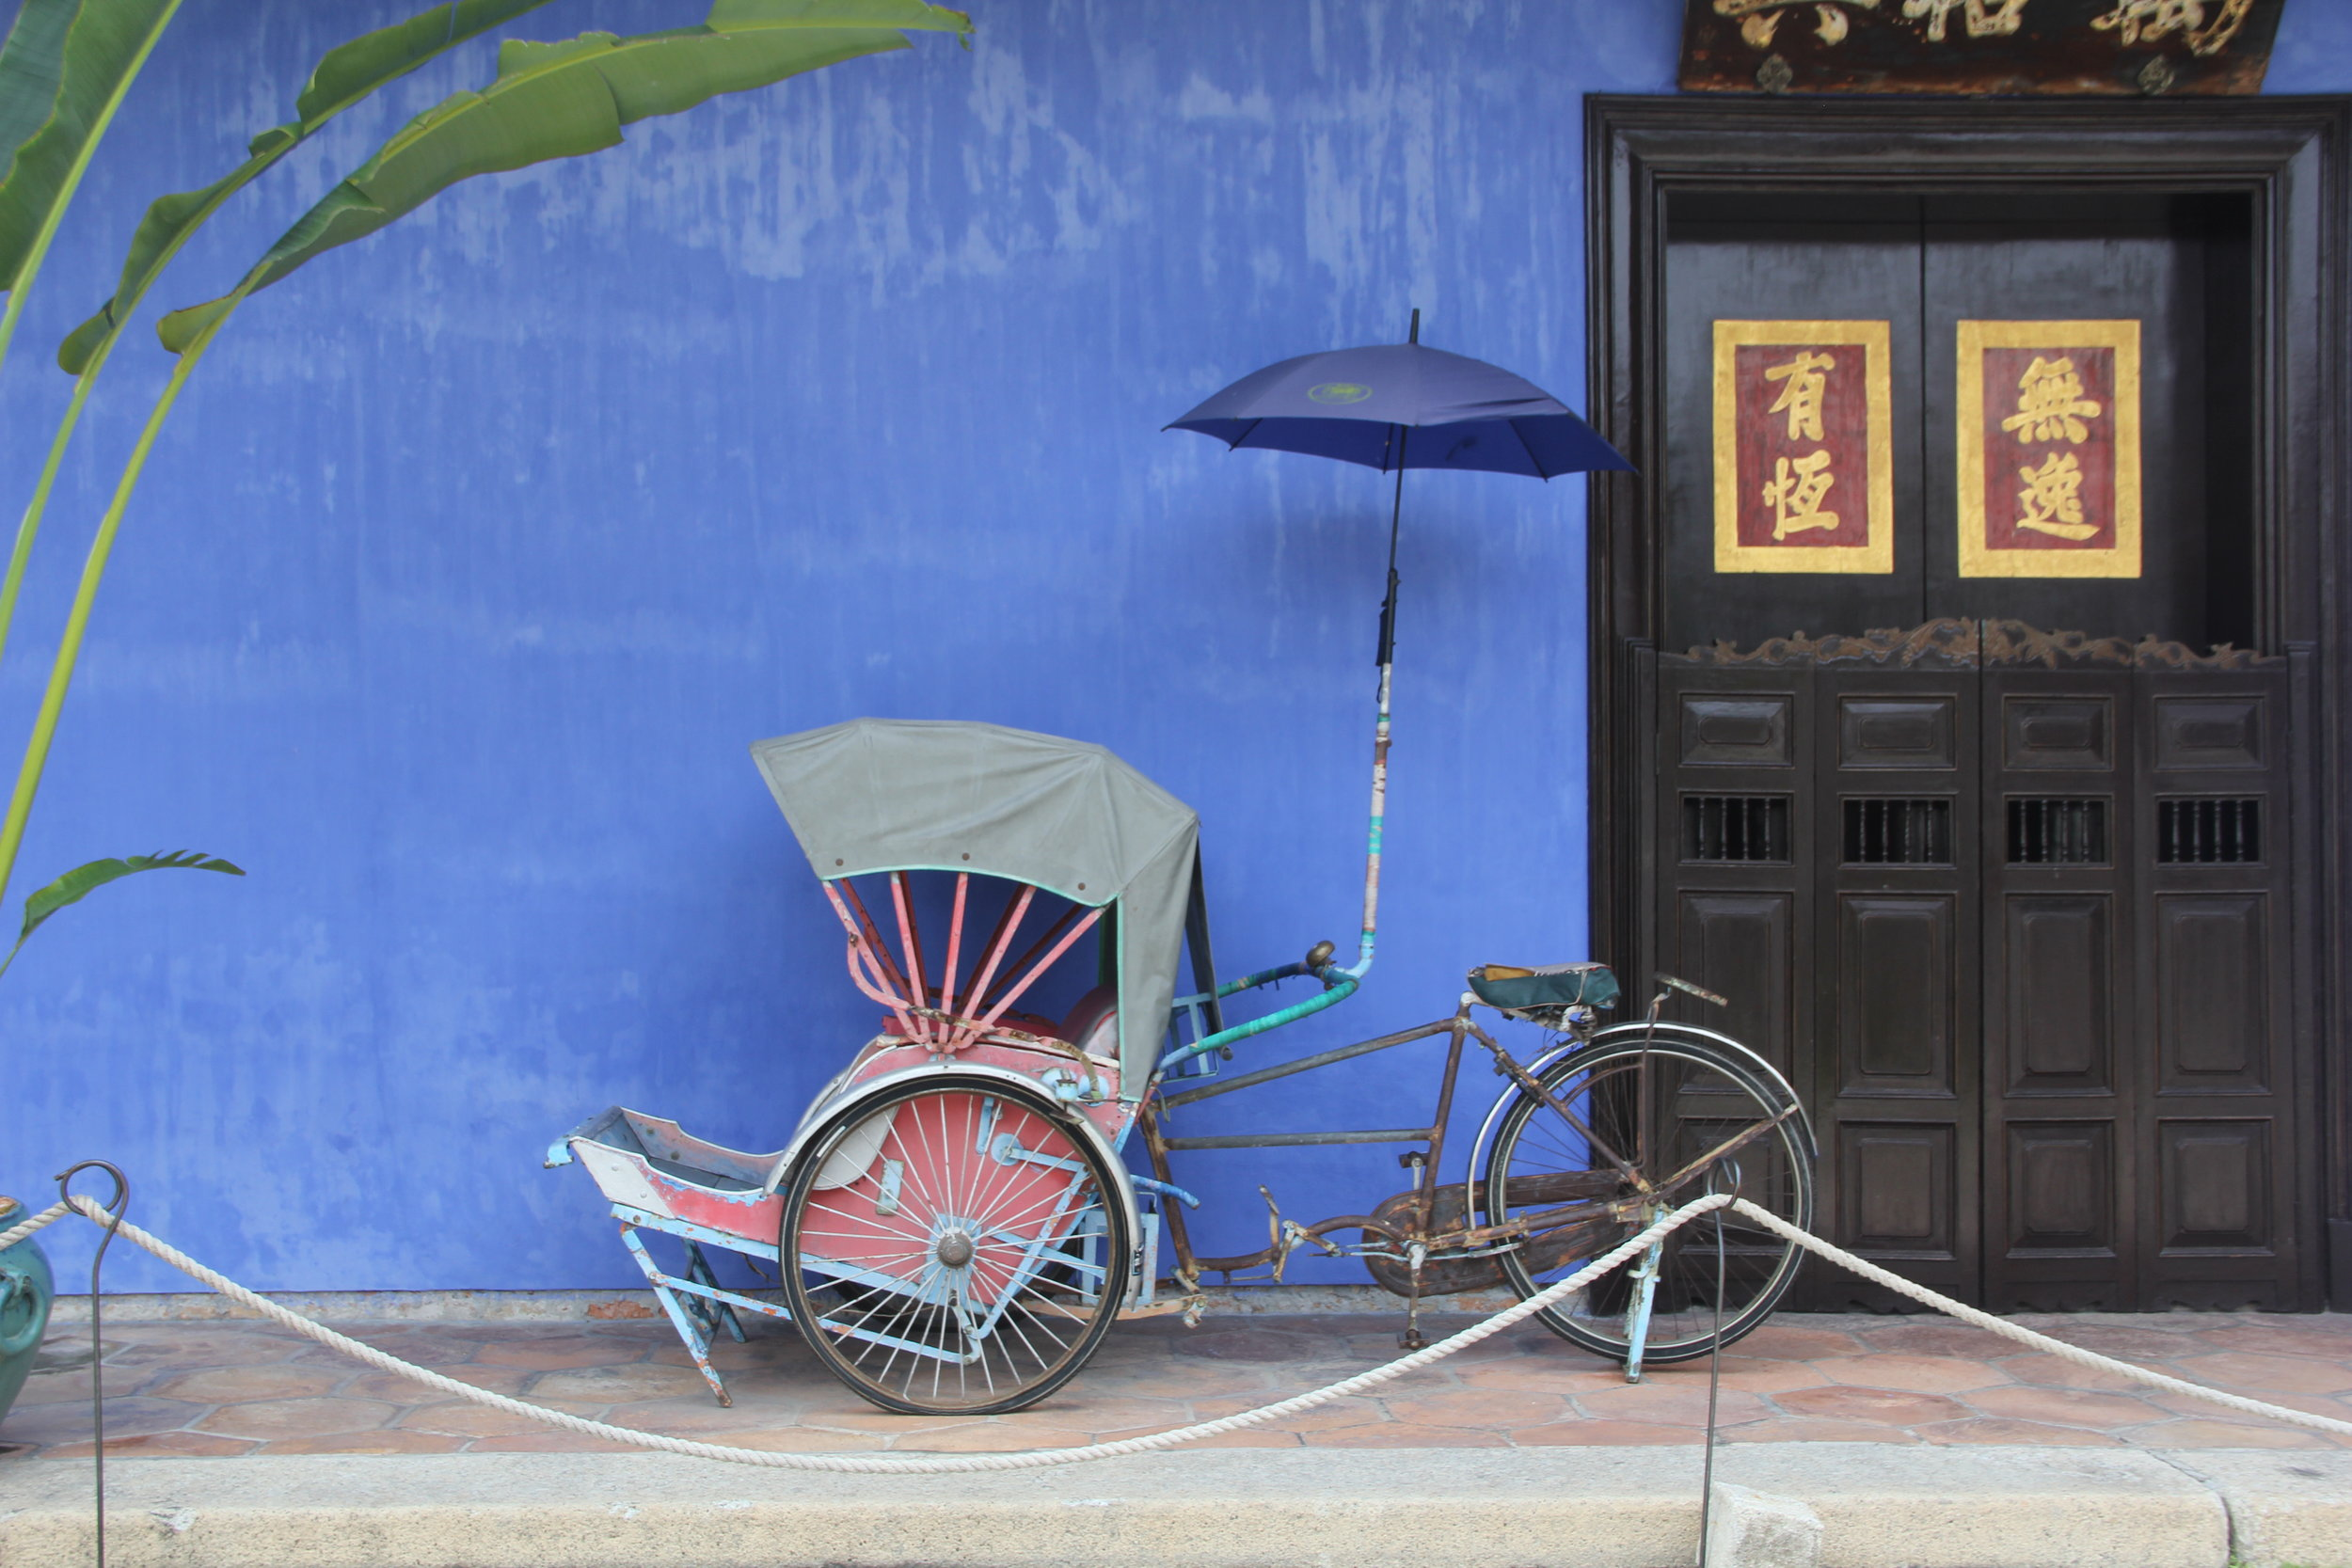 Trishaw for display at The Blue Mansion